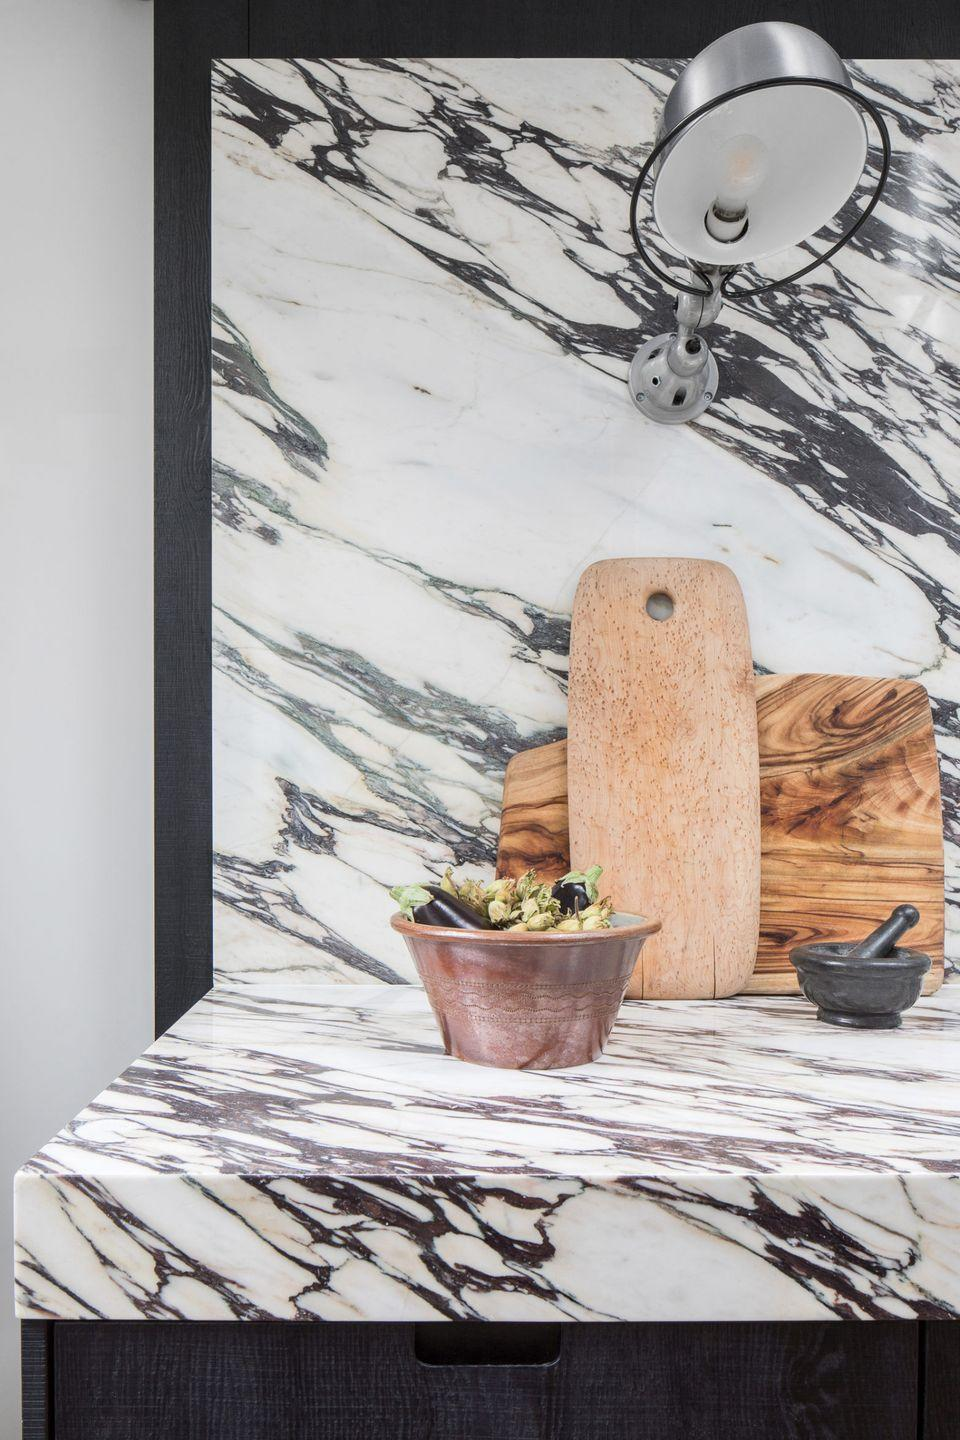 """<p>If you don't want plain white countertops in your white kitchen, marble makes for a visually interesting alternative. With a huge variety of colour options, from classic grey-toned veins, to soft pink or deep reds. <a href=""""https://www.housebeautiful.com/uk/decorate/kitchen/a36556398/kitchen-worktops/"""" rel=""""nofollow noopener"""" target=""""_blank"""" data-ylk=""""slk:Read our guide to kitchen worktops"""" class=""""link rapid-noclick-resp"""">Read our guide to kitchen worktops</a>.</p><p>Pictured: <a href=""""https://roundhousedesign.com/design-collection/kitchen-type/metro/wilbur/"""" rel=""""nofollow noopener"""" target=""""_blank"""" data-ylk=""""slk:Wilbur Kitchen by Roundhouse"""" class=""""link rapid-noclick-resp"""">Wilbur Kitchen by Roundhouse</a></p>"""